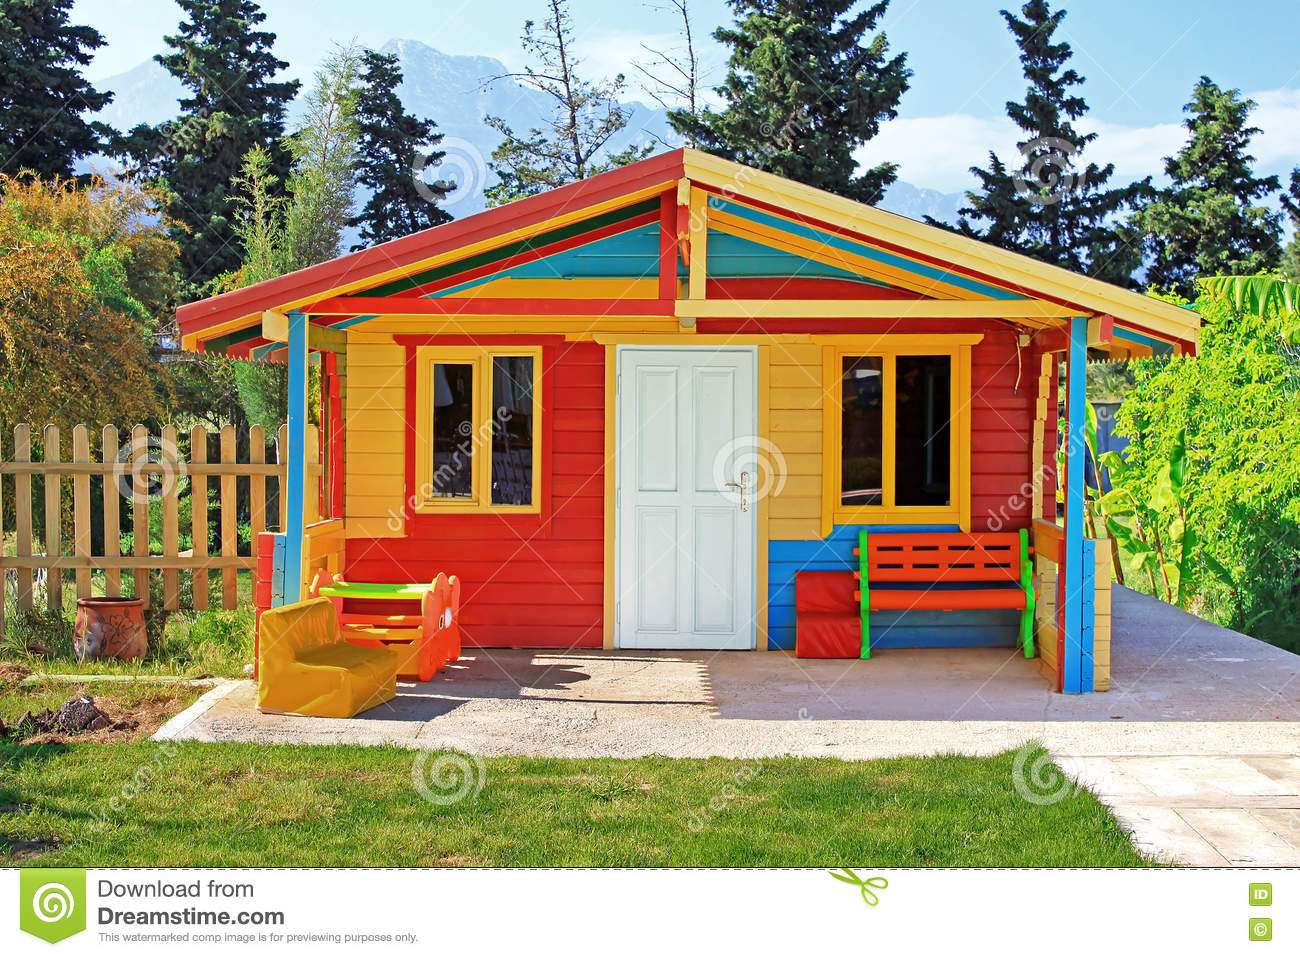 Childrens Play House In A Yard Stock Photo Image Of Roof Blue